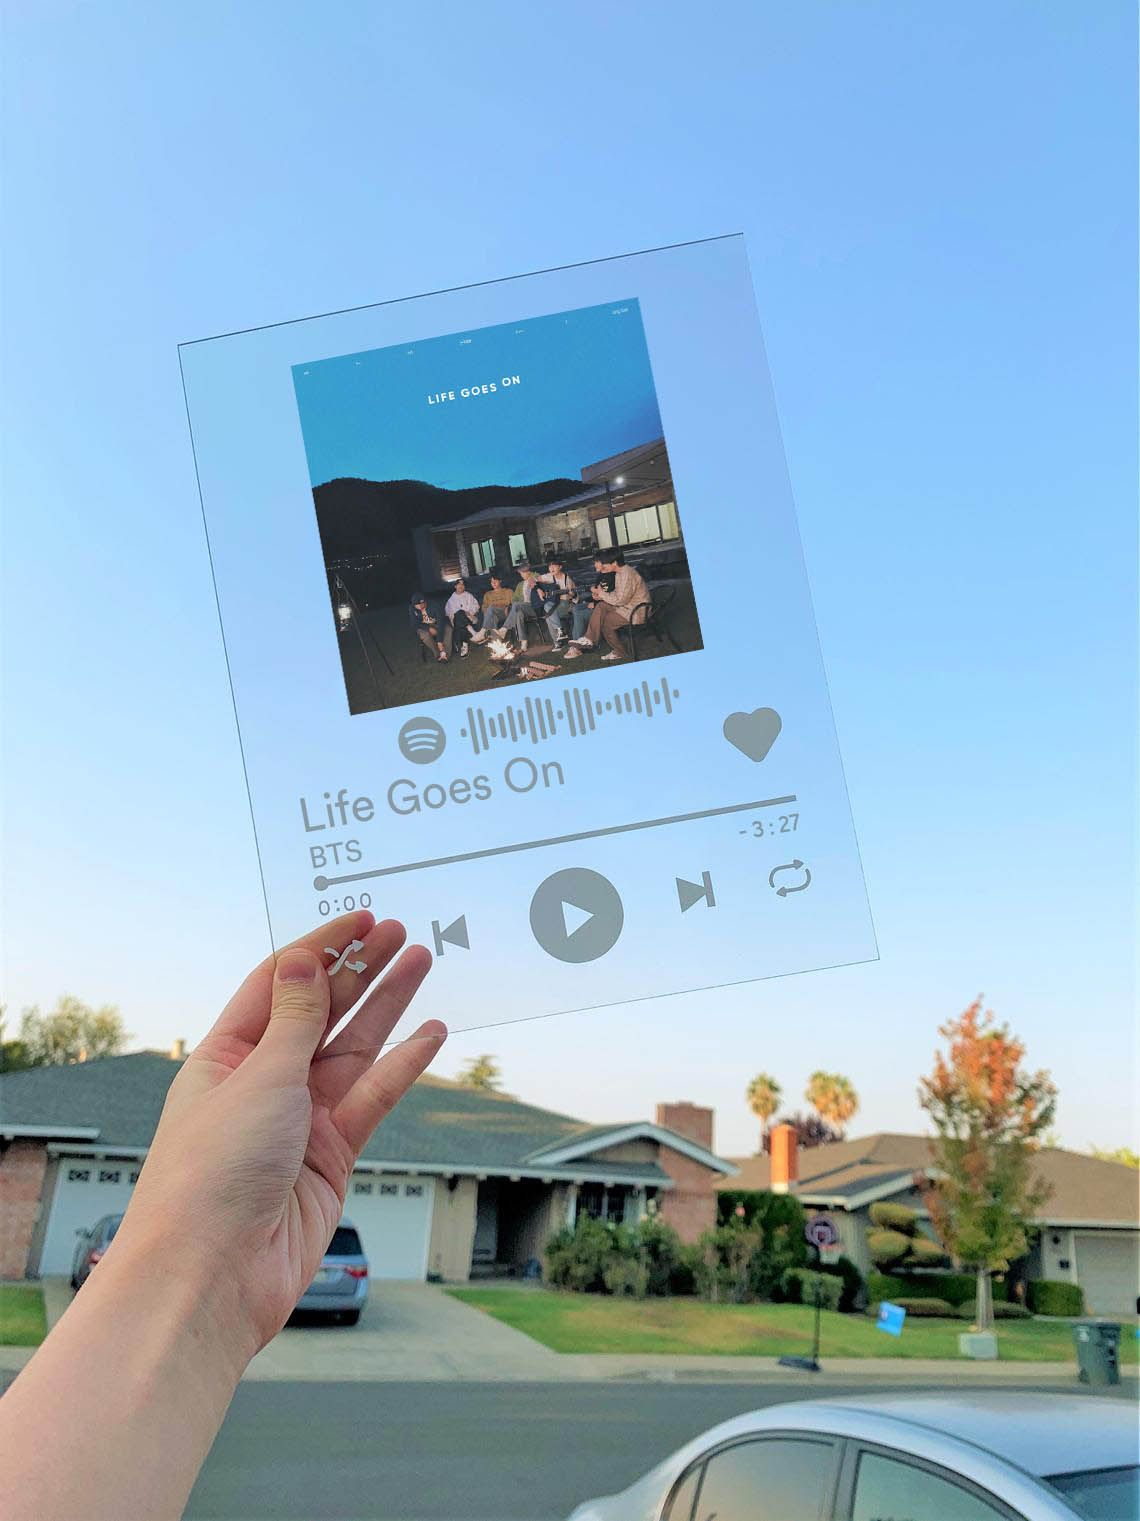 BTS Life Goes On Spotify Acrylic Plaque with Spoti